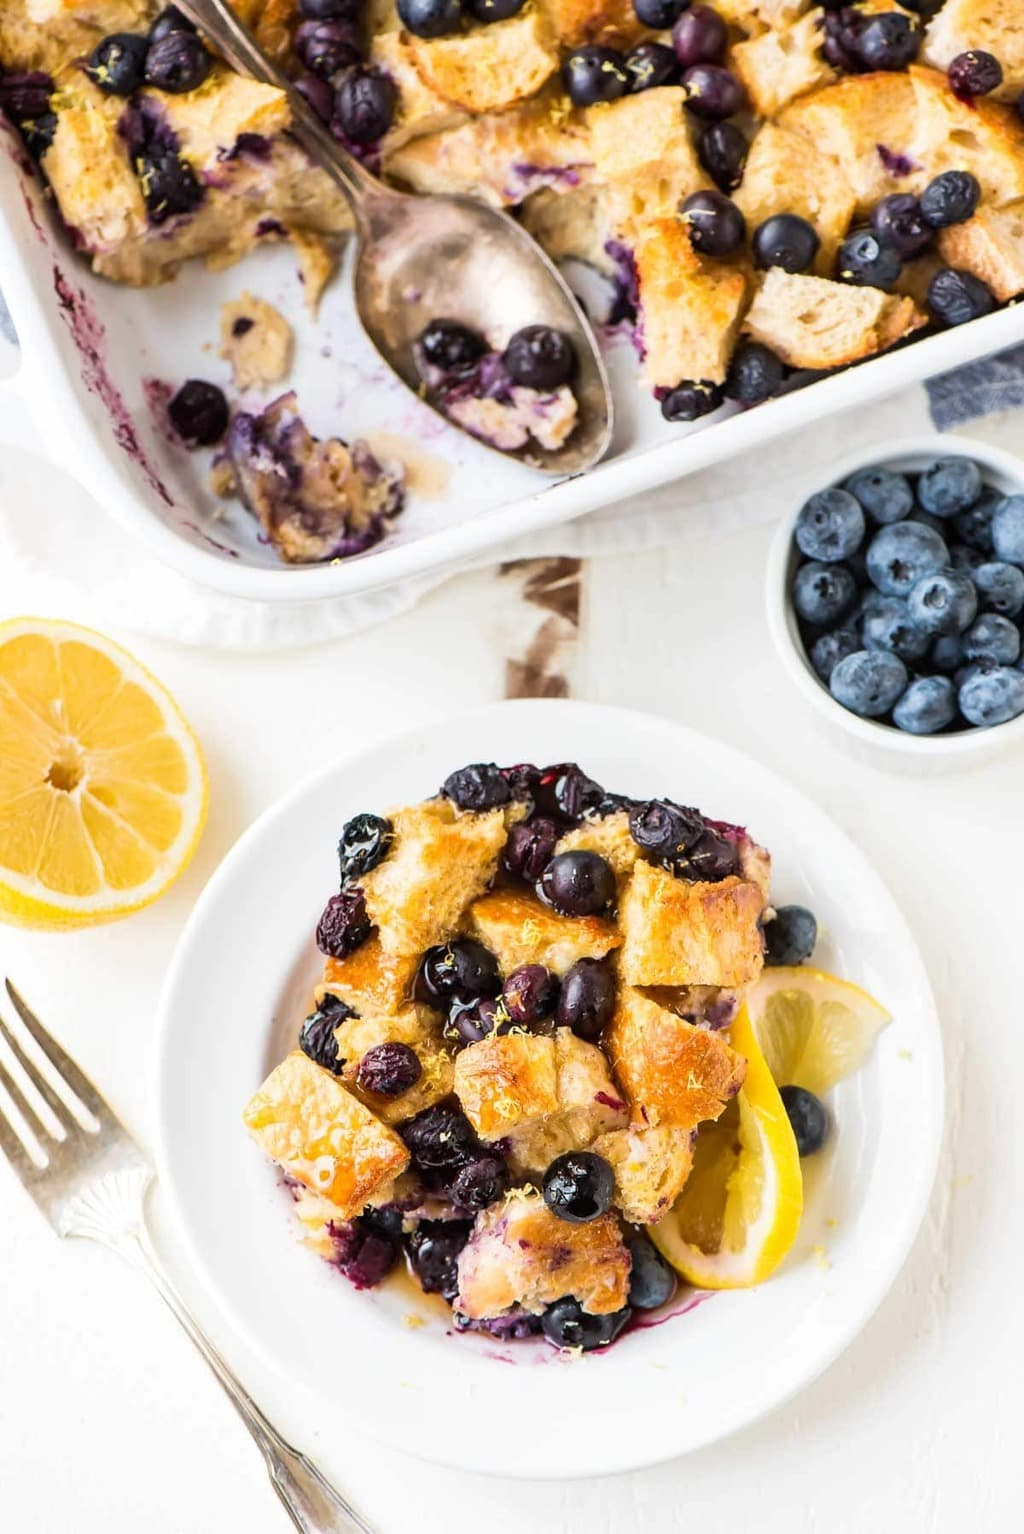 Overhead photo of Overnight Lemon Blueberry French Toast Casserole from the Well Plated food blog.